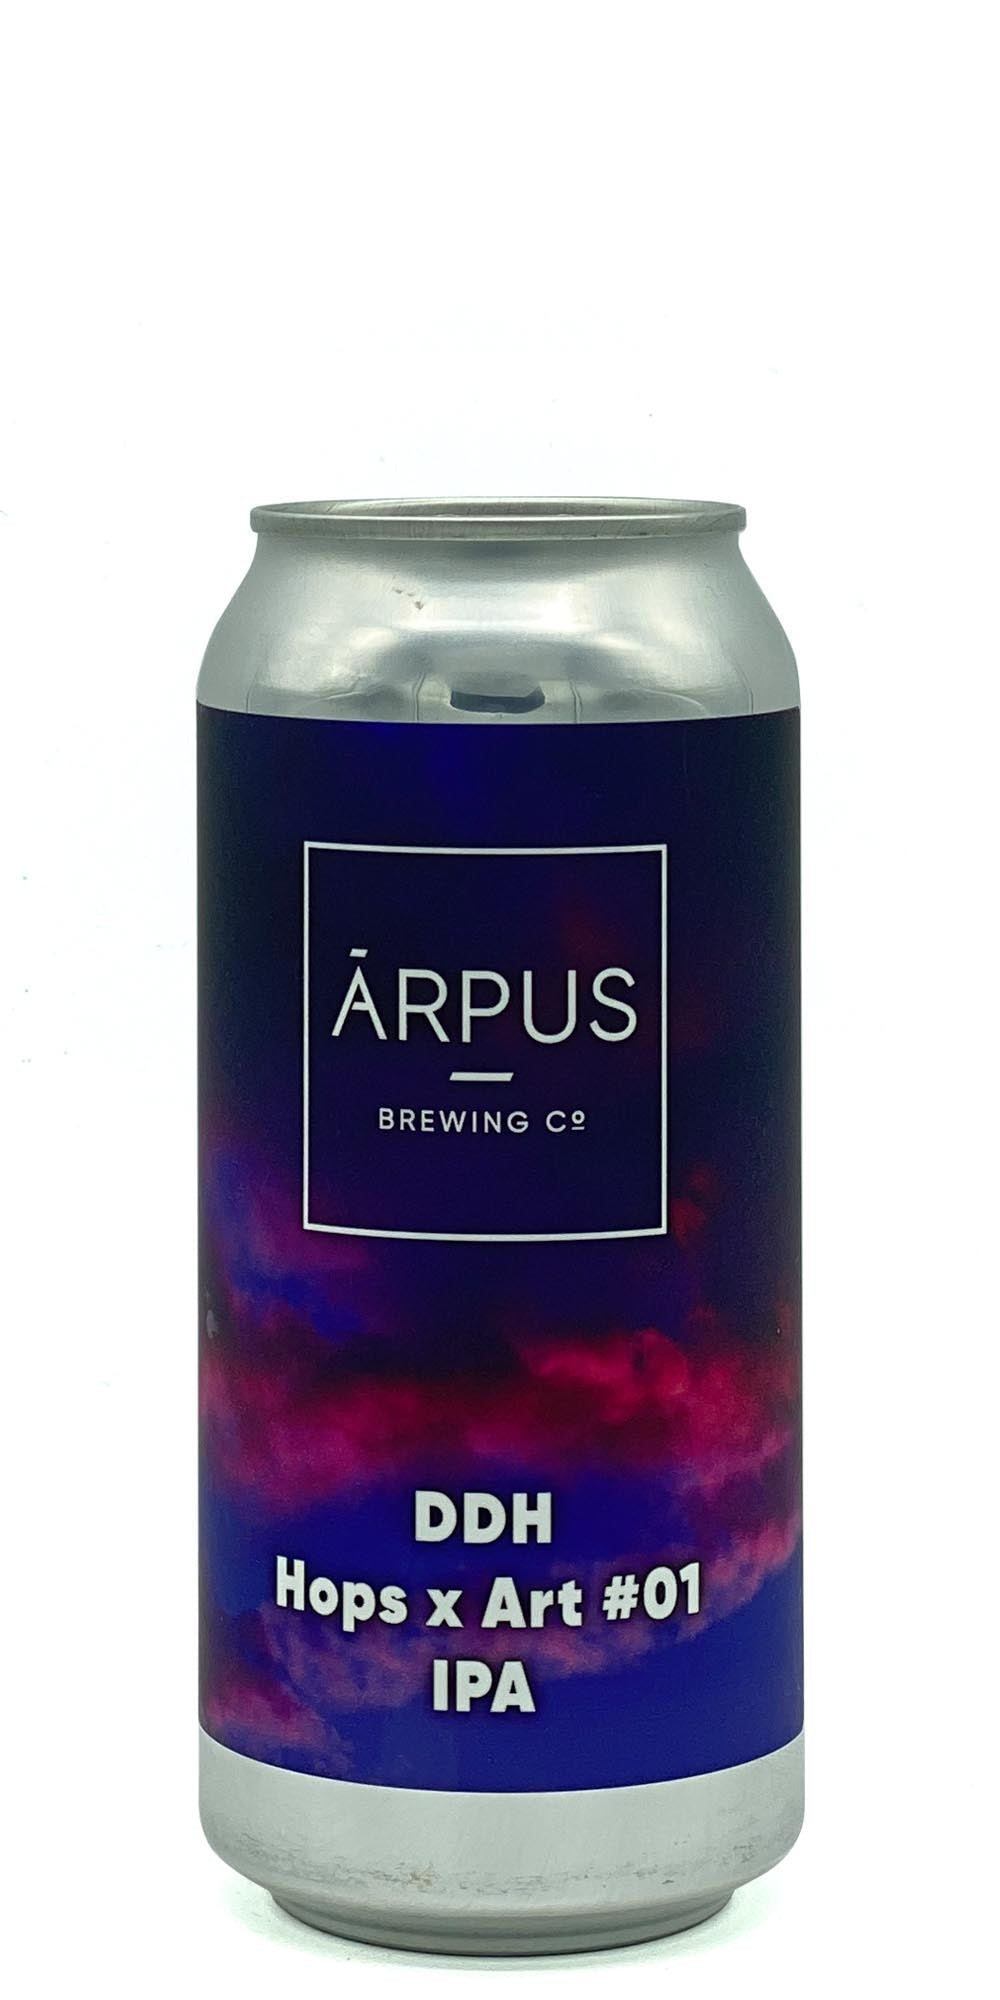 Arpus Brewing Co - DDH Hops x Art #1 - Drikbeer - Order Craft Beer Online